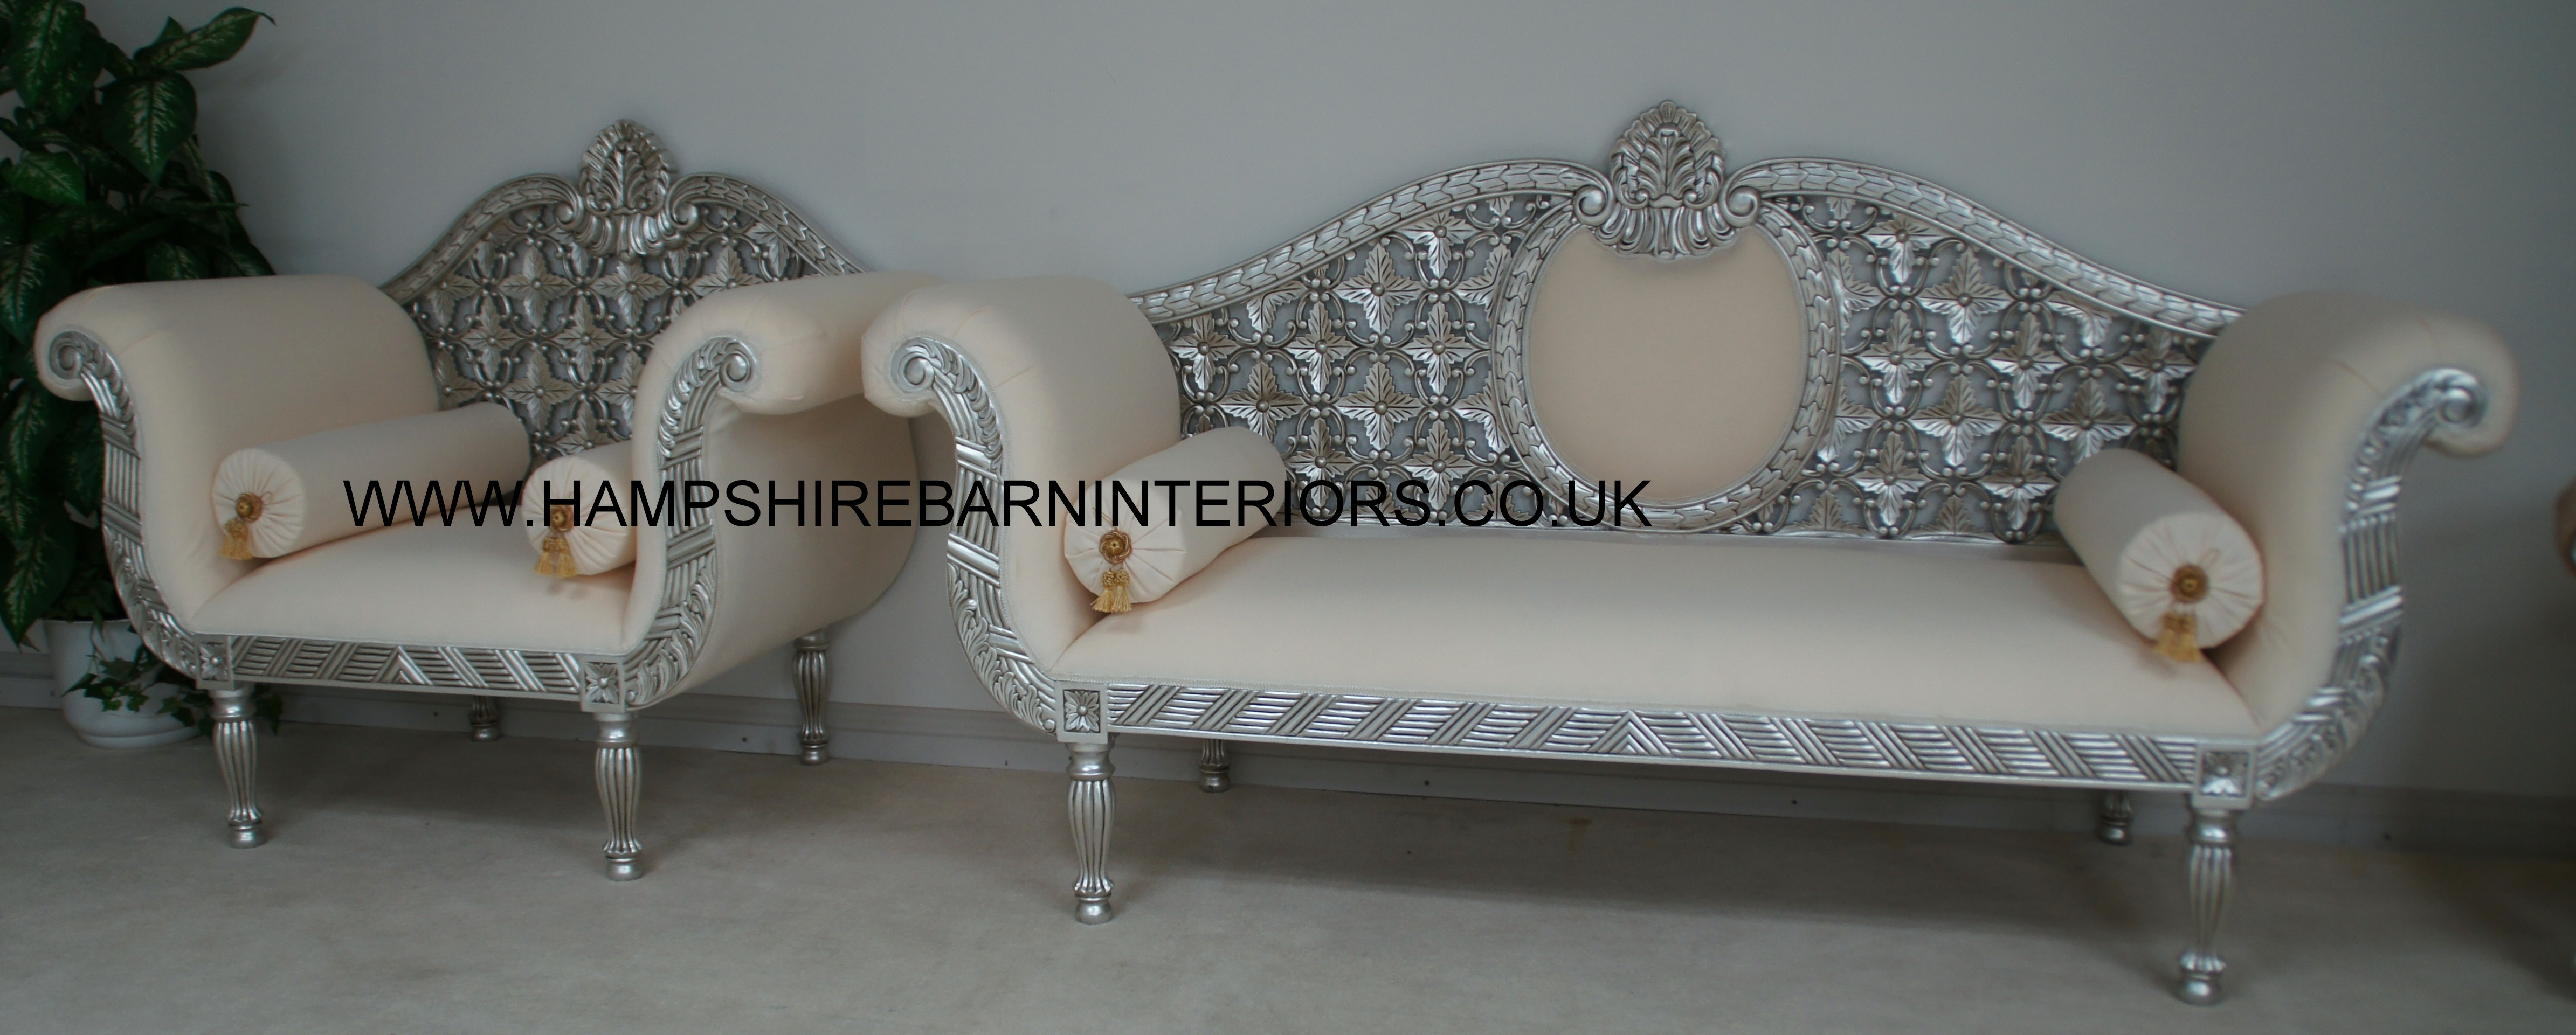 A ROYAL WEDDING SET SOFA PLUS TWO CHAIRS IN SILVER LEAF IN